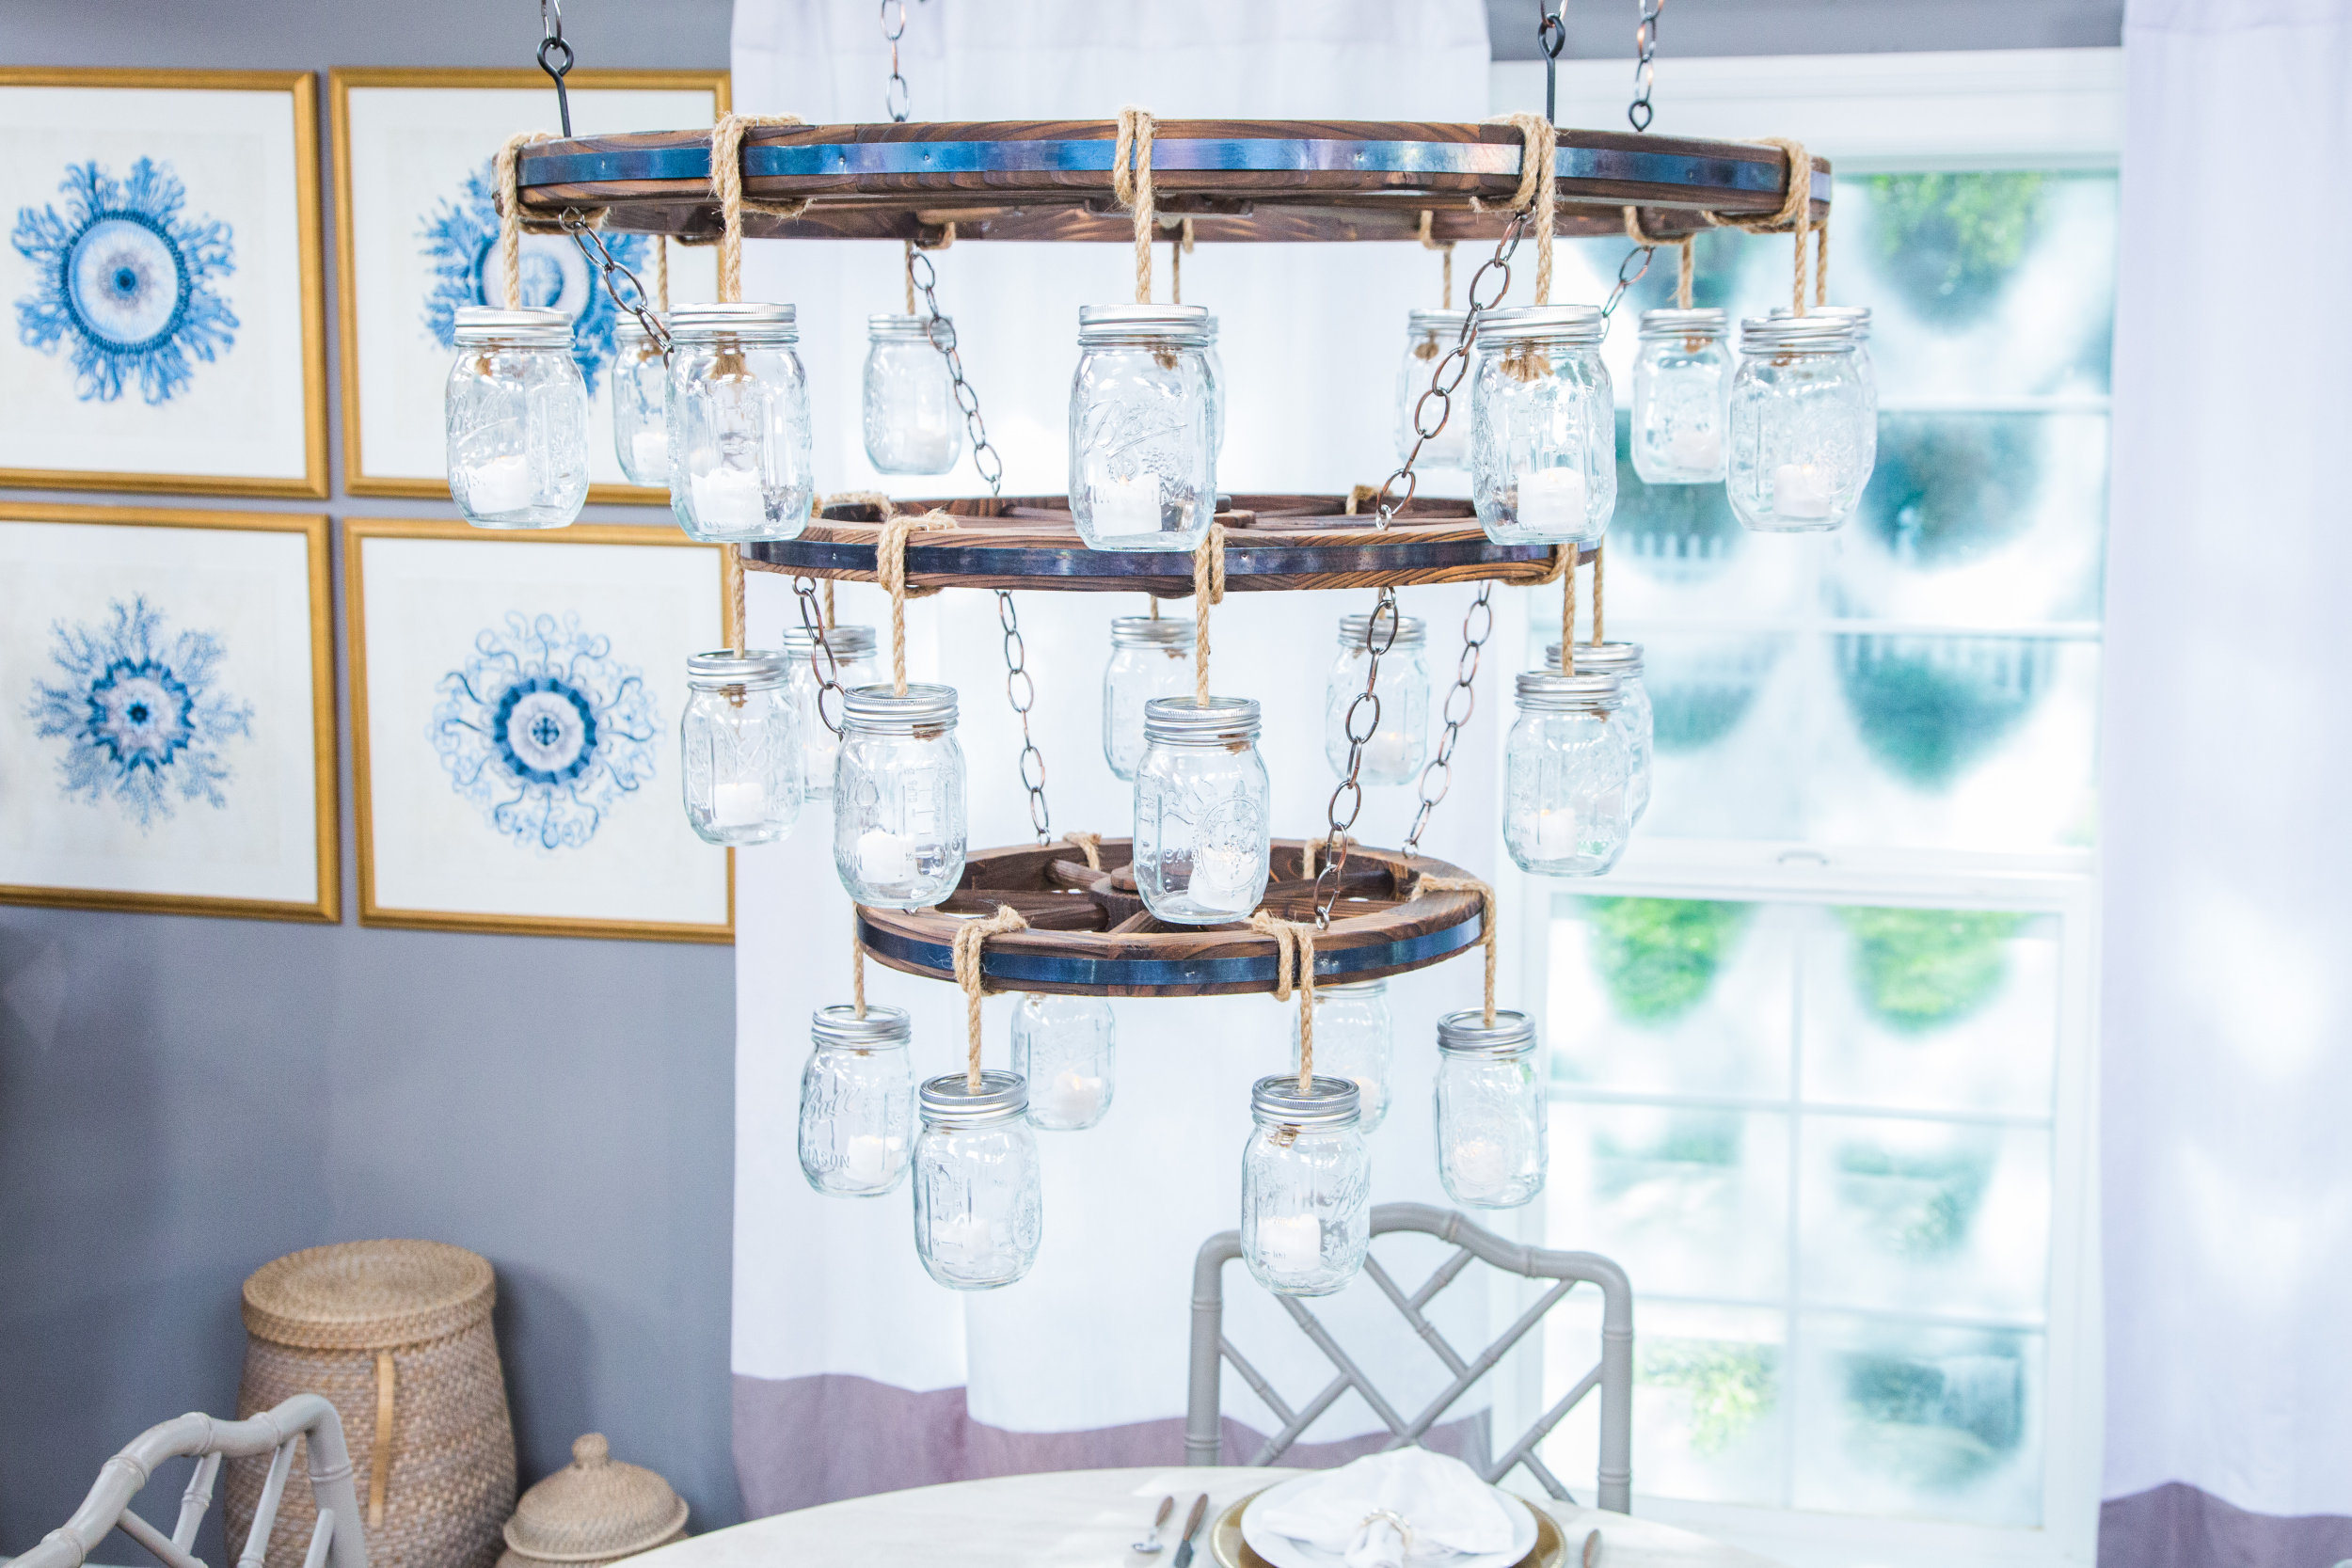 How To Diy Wagon Wheel Chandelier Home Family